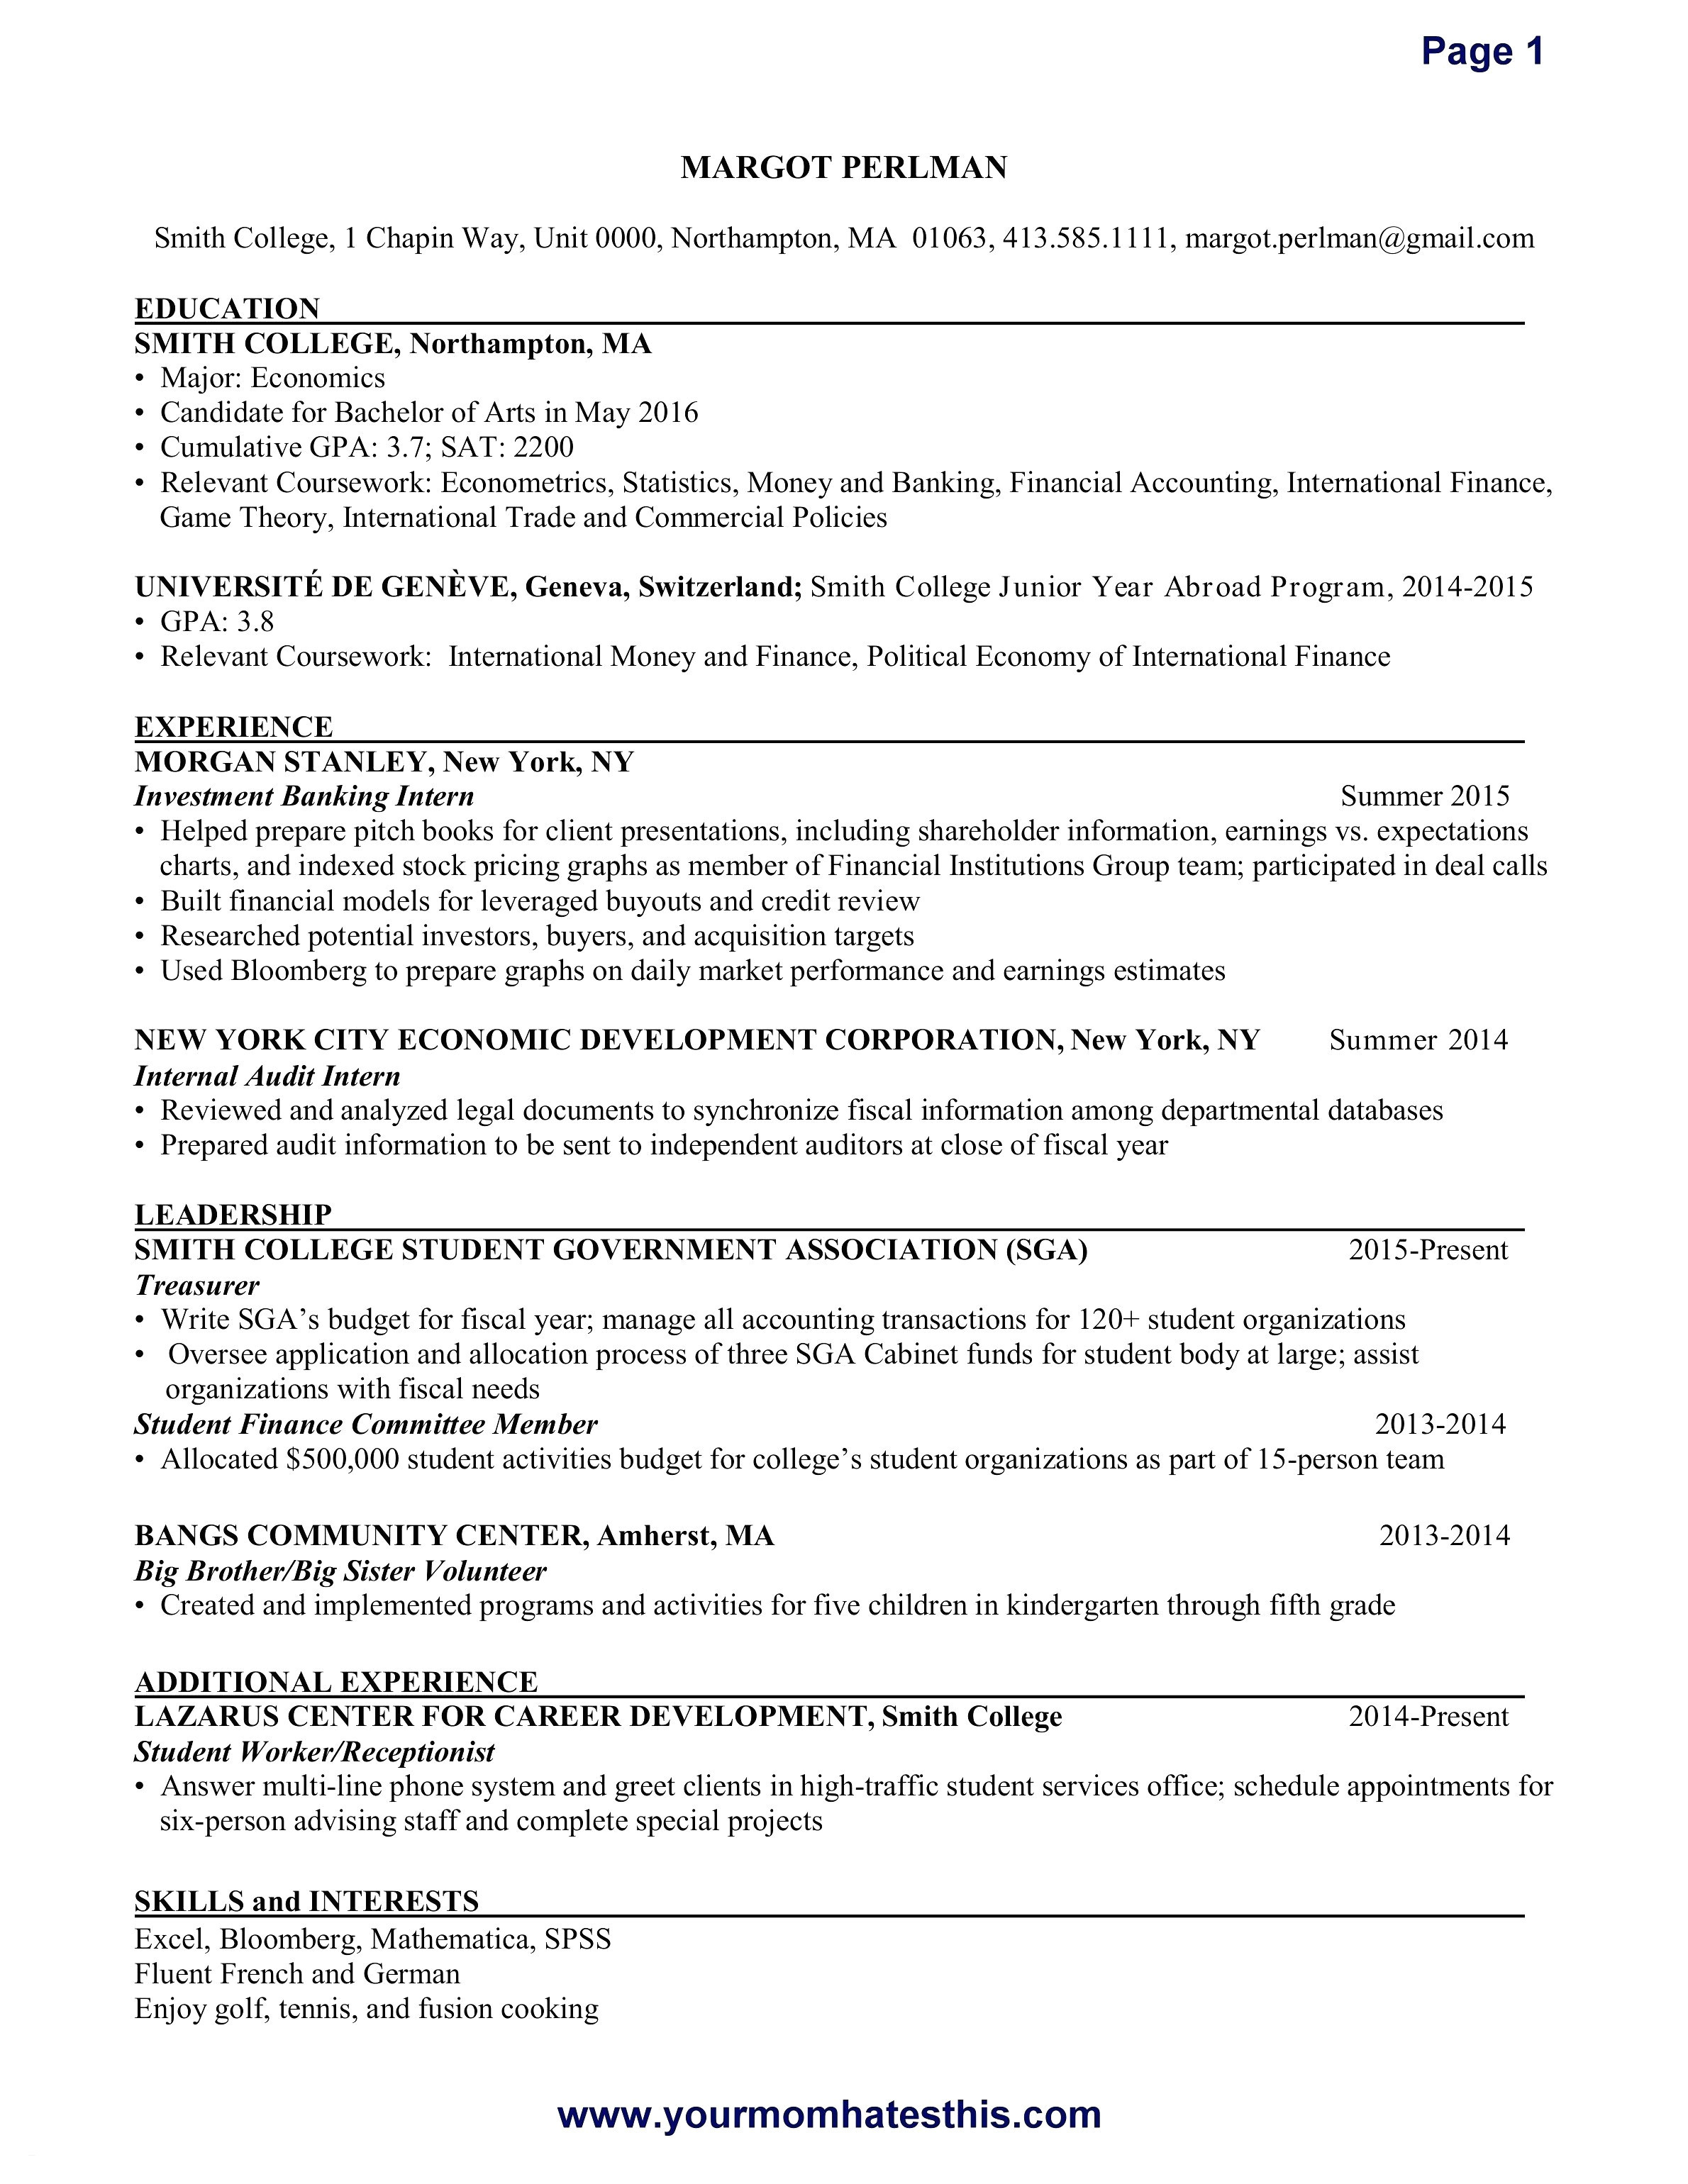 security officer resume template example-Awesome Security ficer Resume Sample 3-r